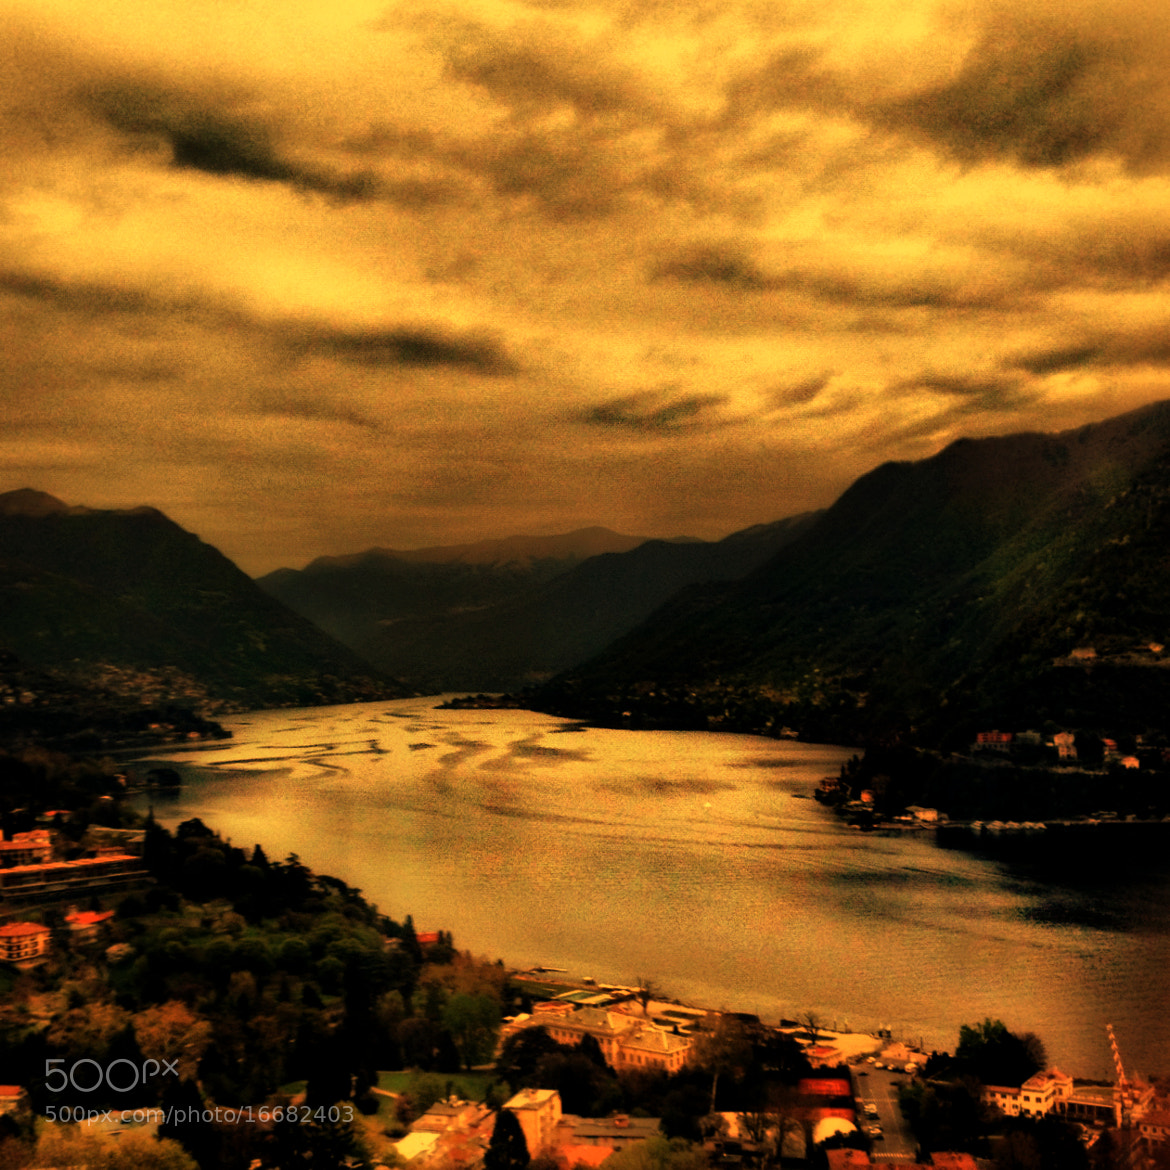 Photograph Como at sunset. by michele  tortorici on 500px